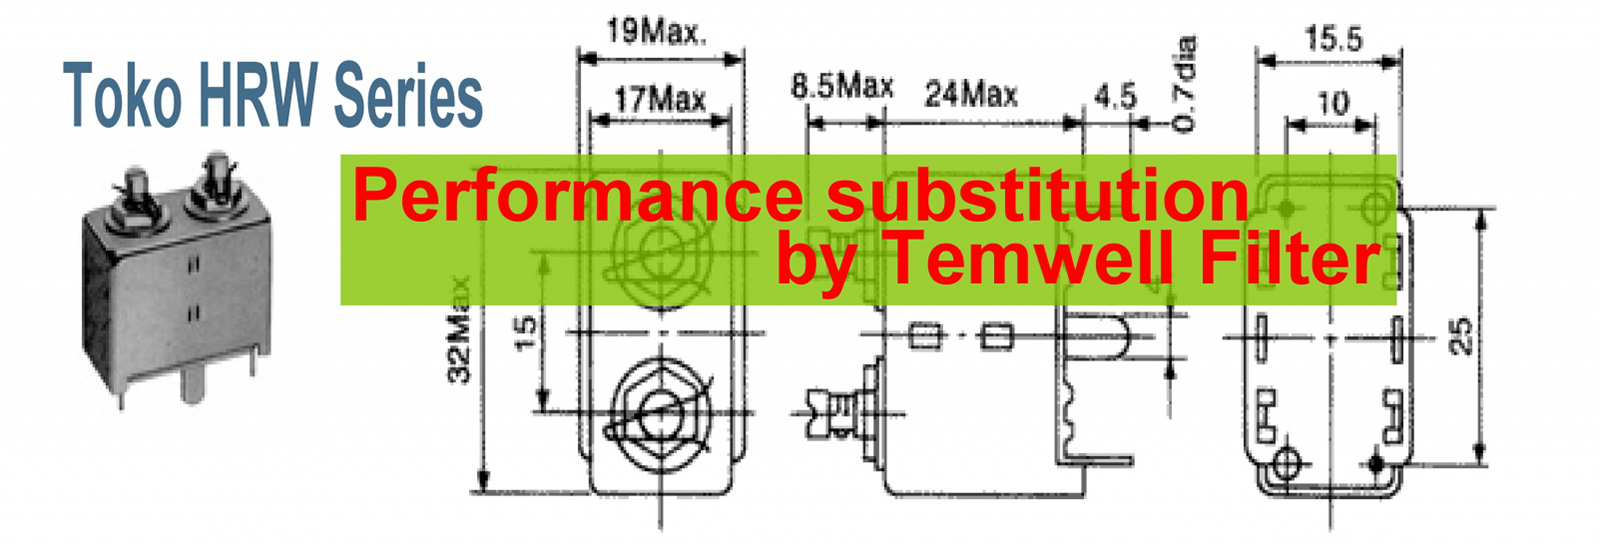 Temwell HRW Series Toko Helical Filters